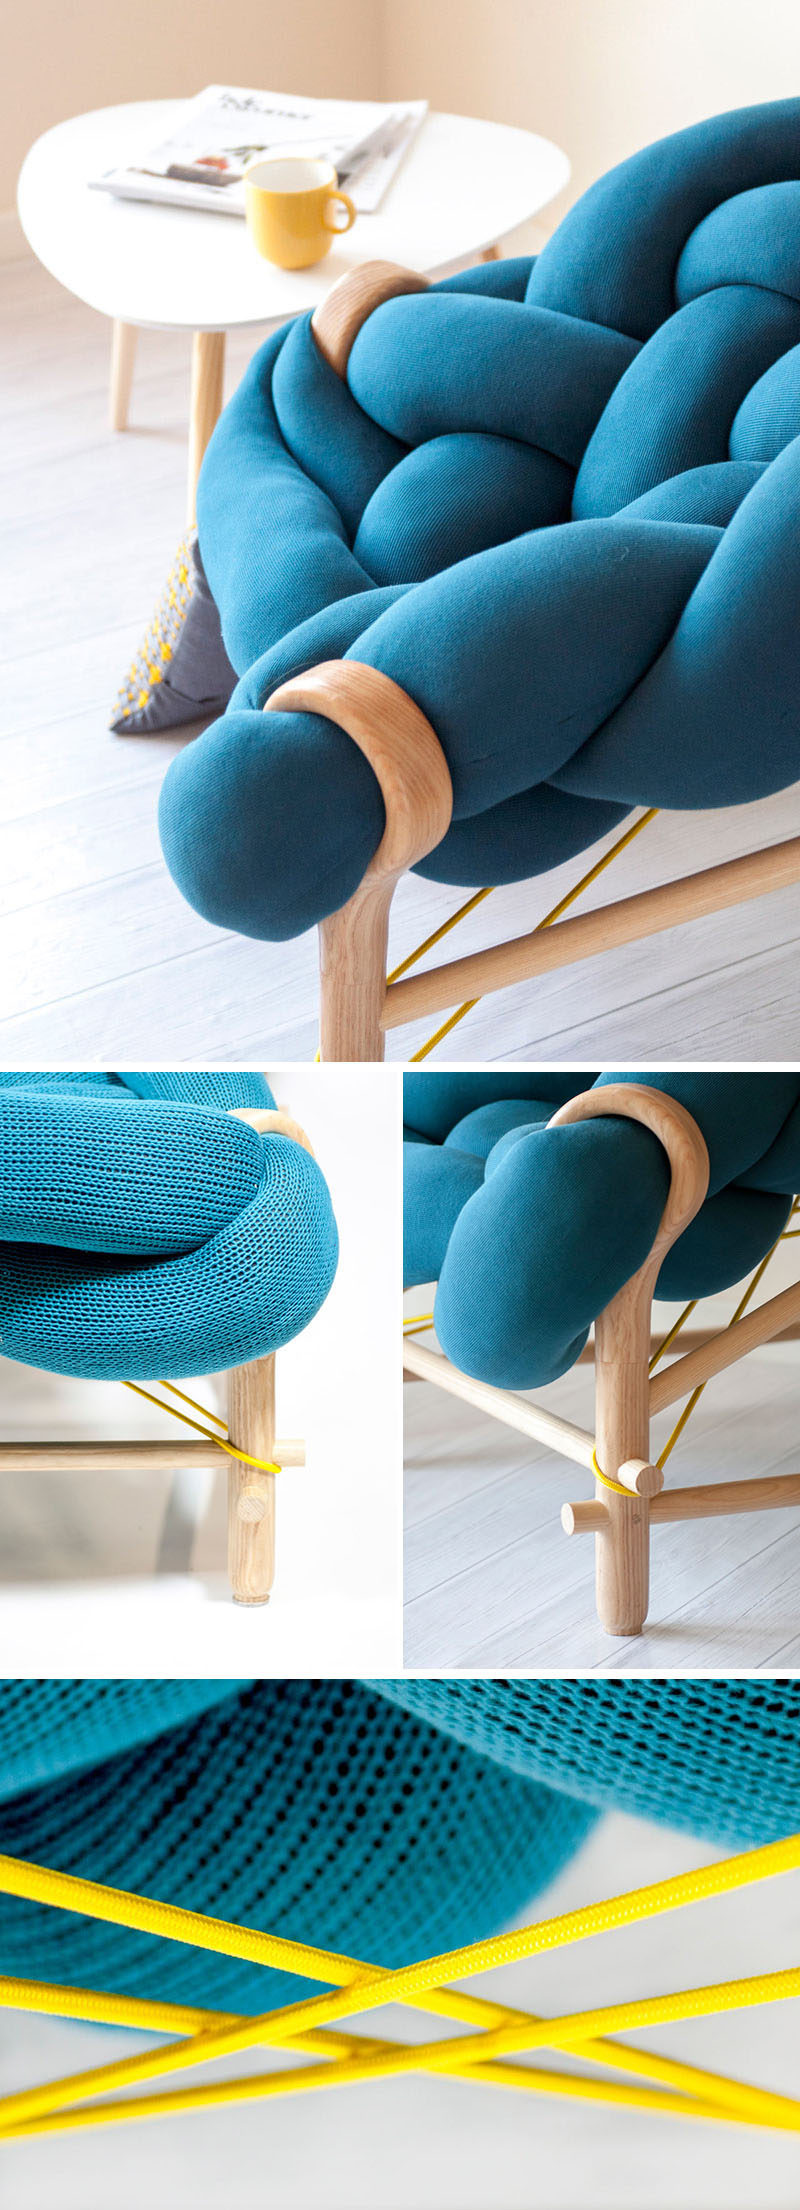 The design of this chair combines traditional techniques like weaving with modern day design to create playful and bold designs.